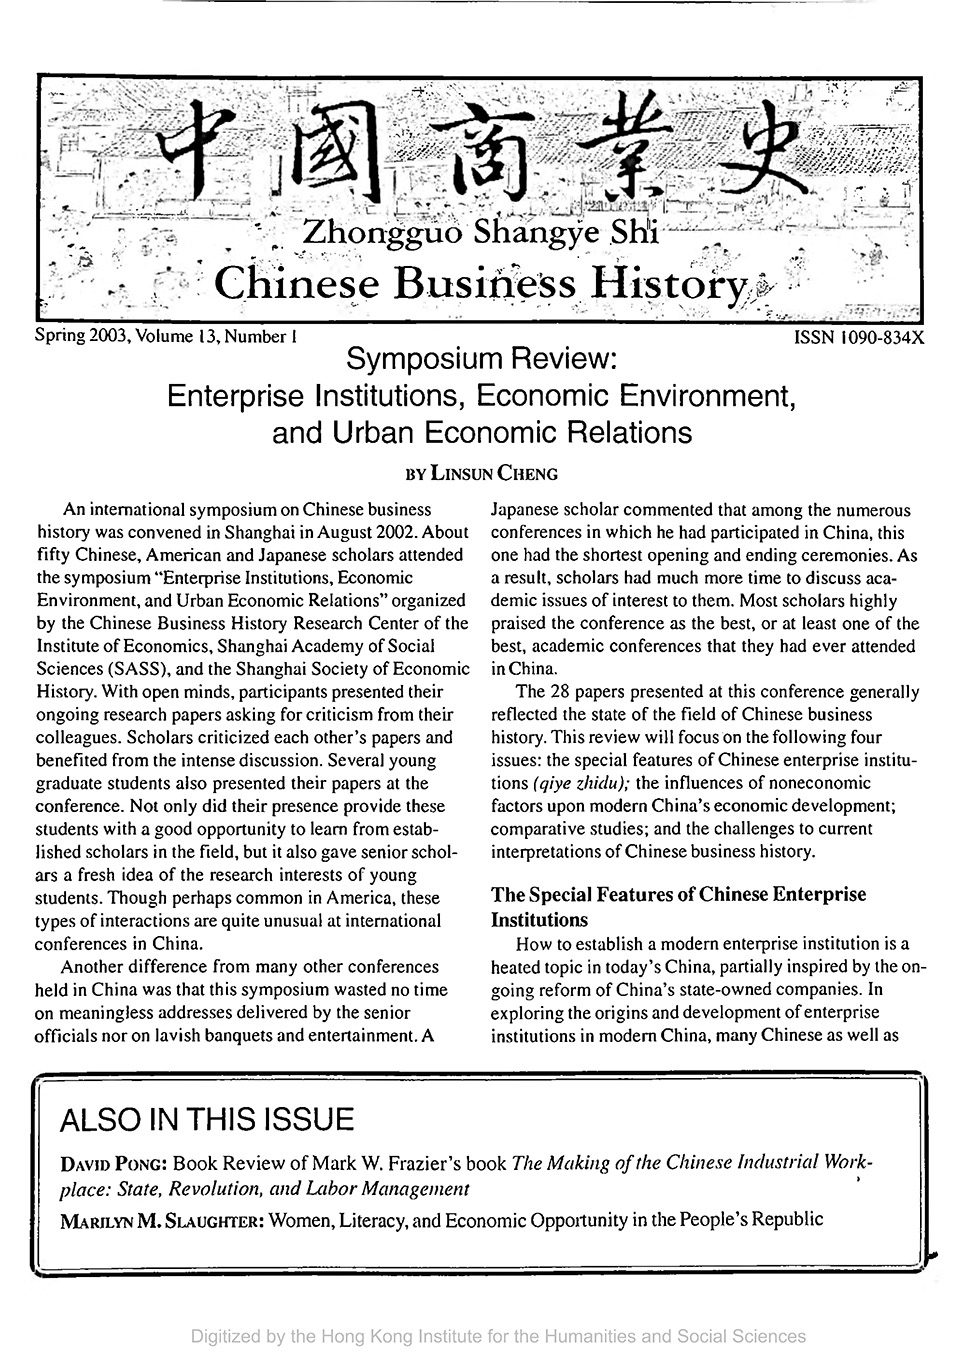 Cover of Chinese Business History Journal Volume 13, Number 1